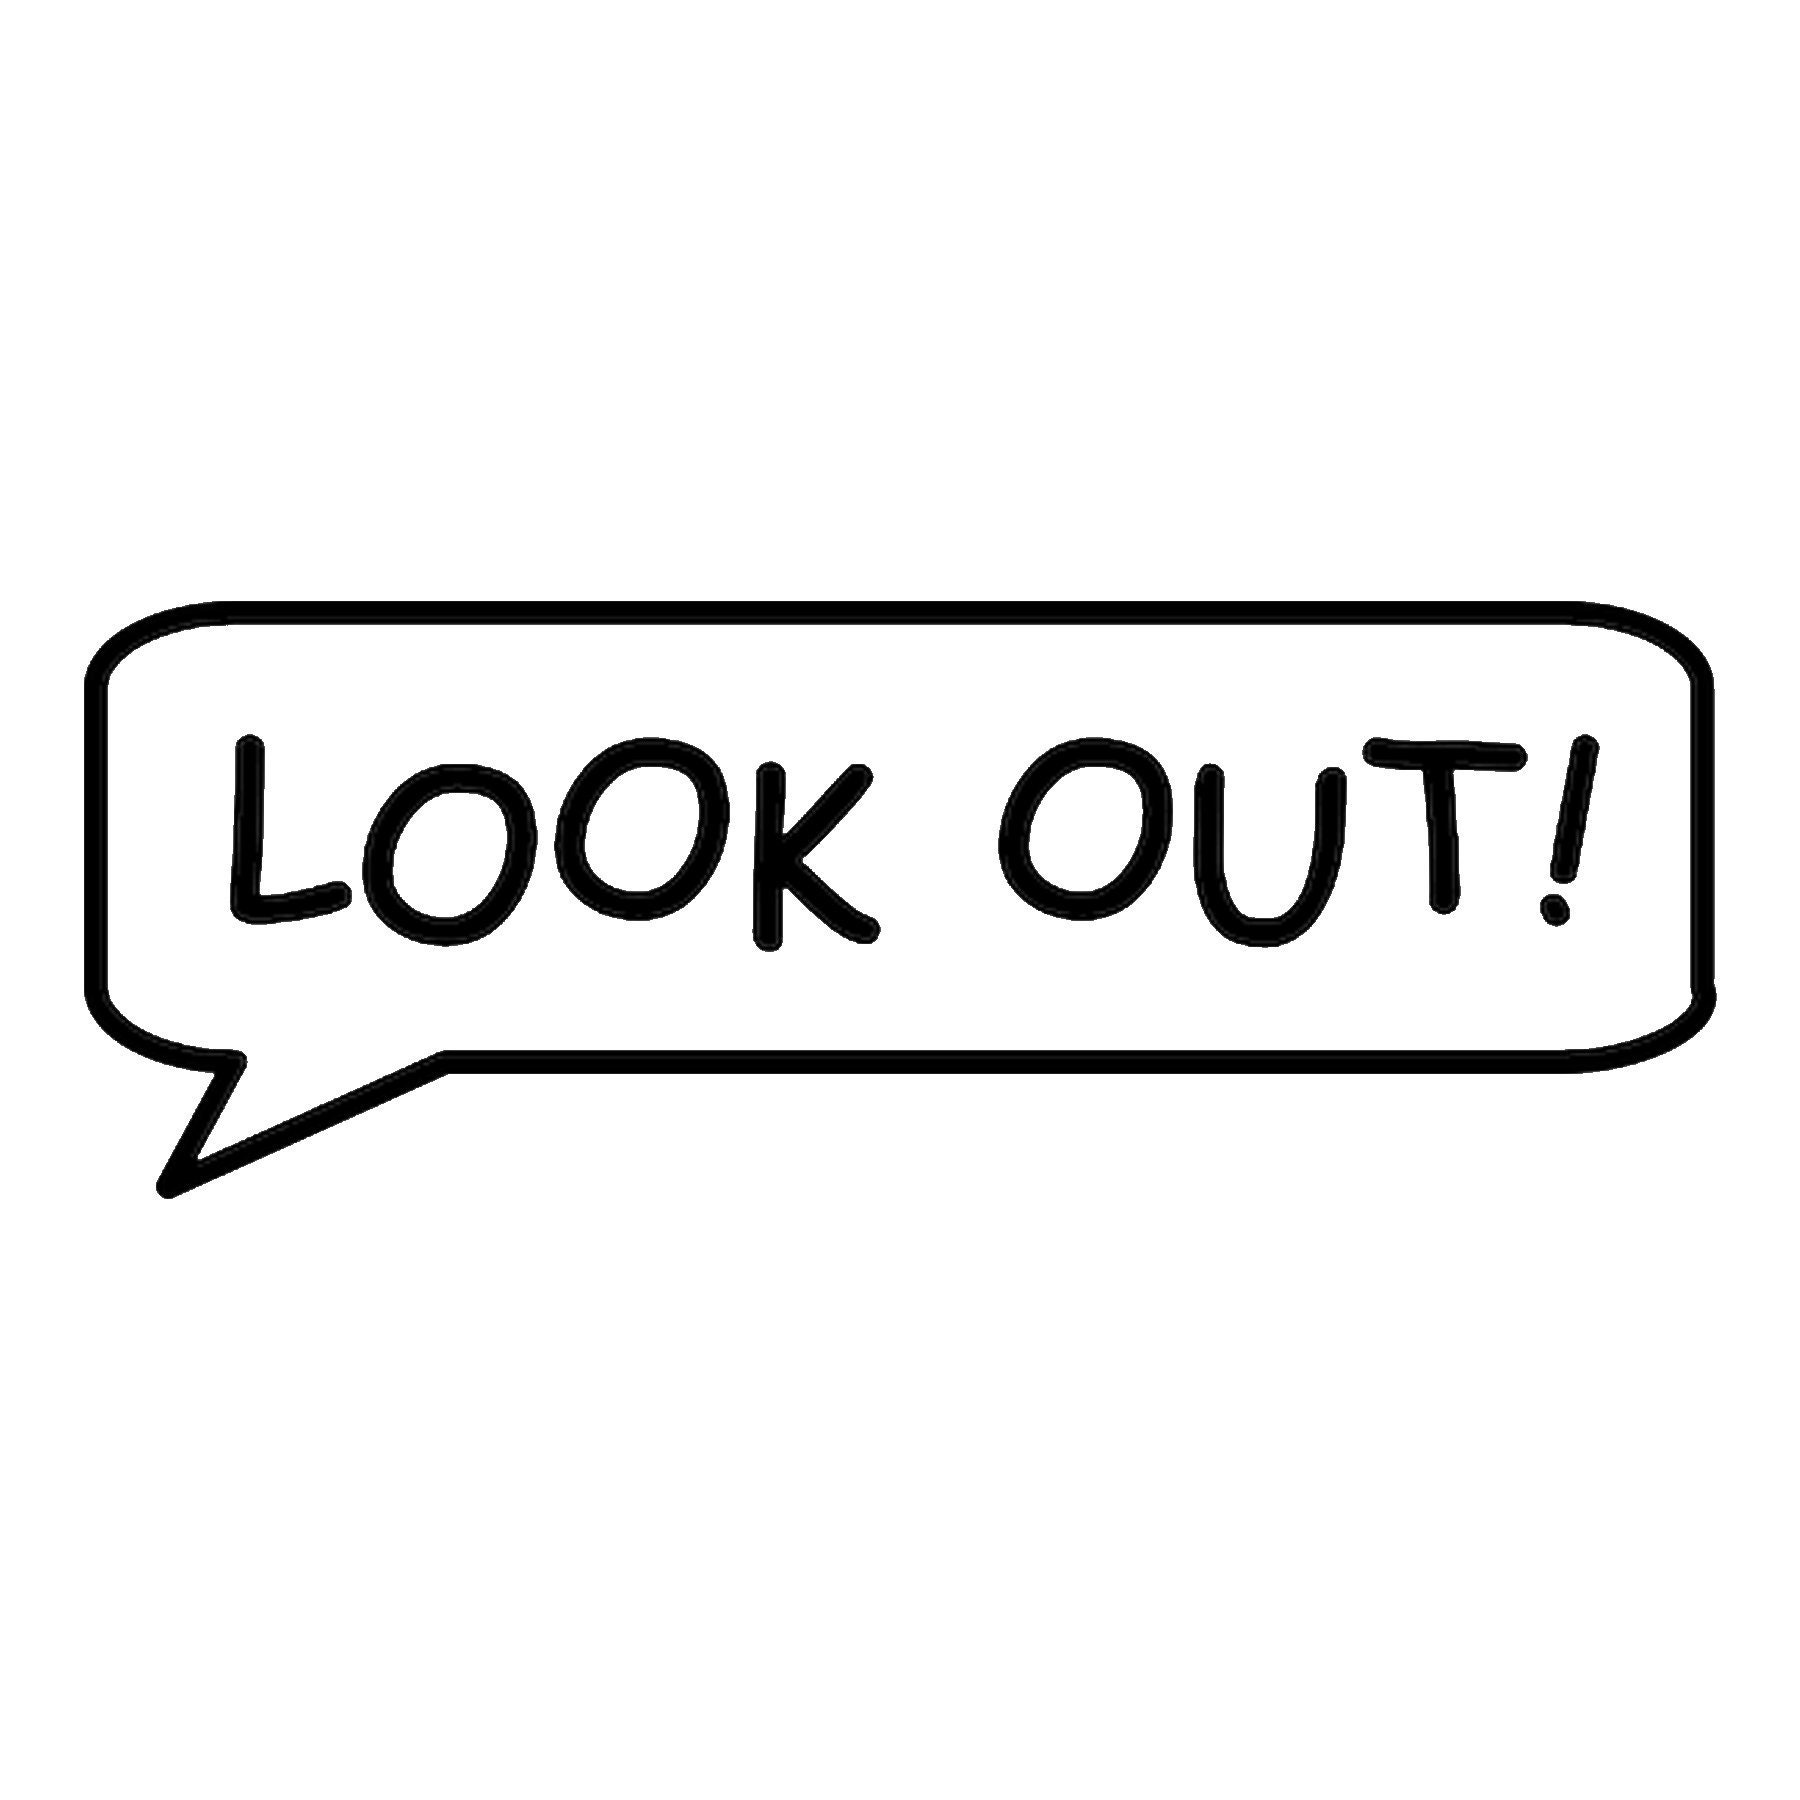 CAD$8.69 - Look Out! Call out Vinyl Decal - various sizes and colors - colours